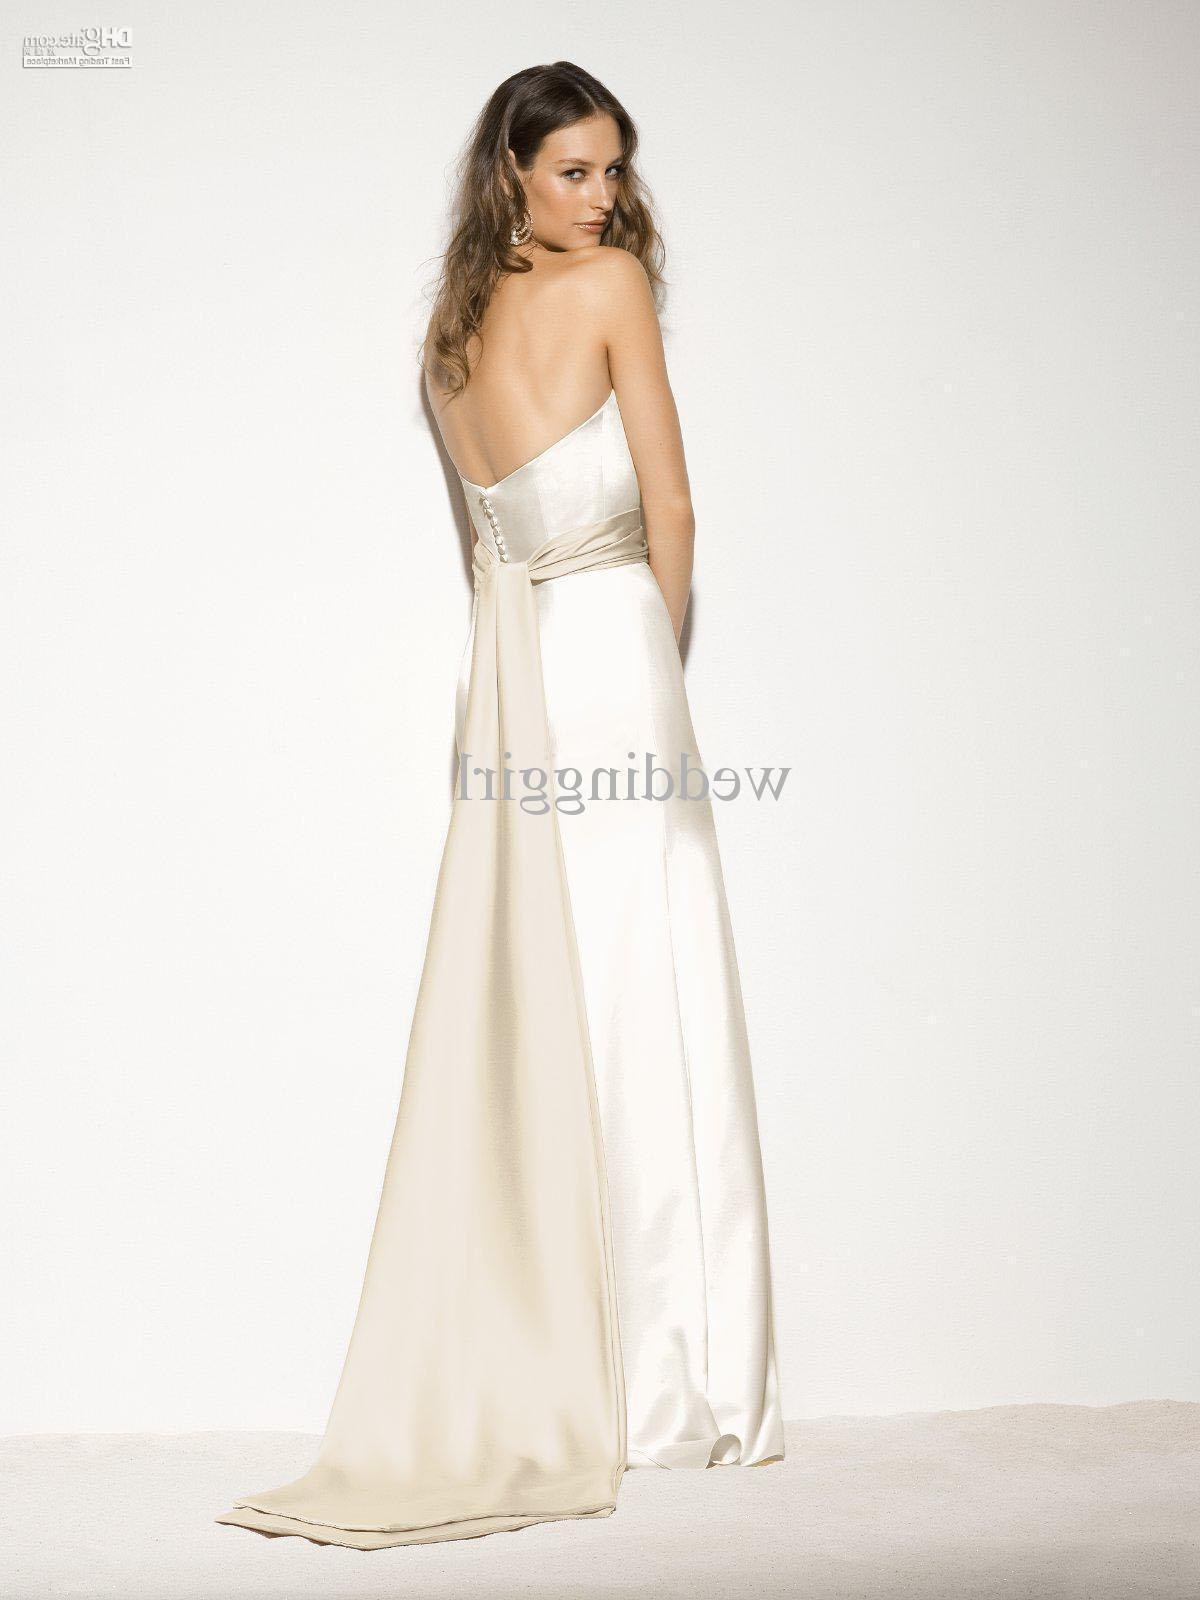 V-neck mermaid slhouette lace gown with satin bow and jeweled detail on